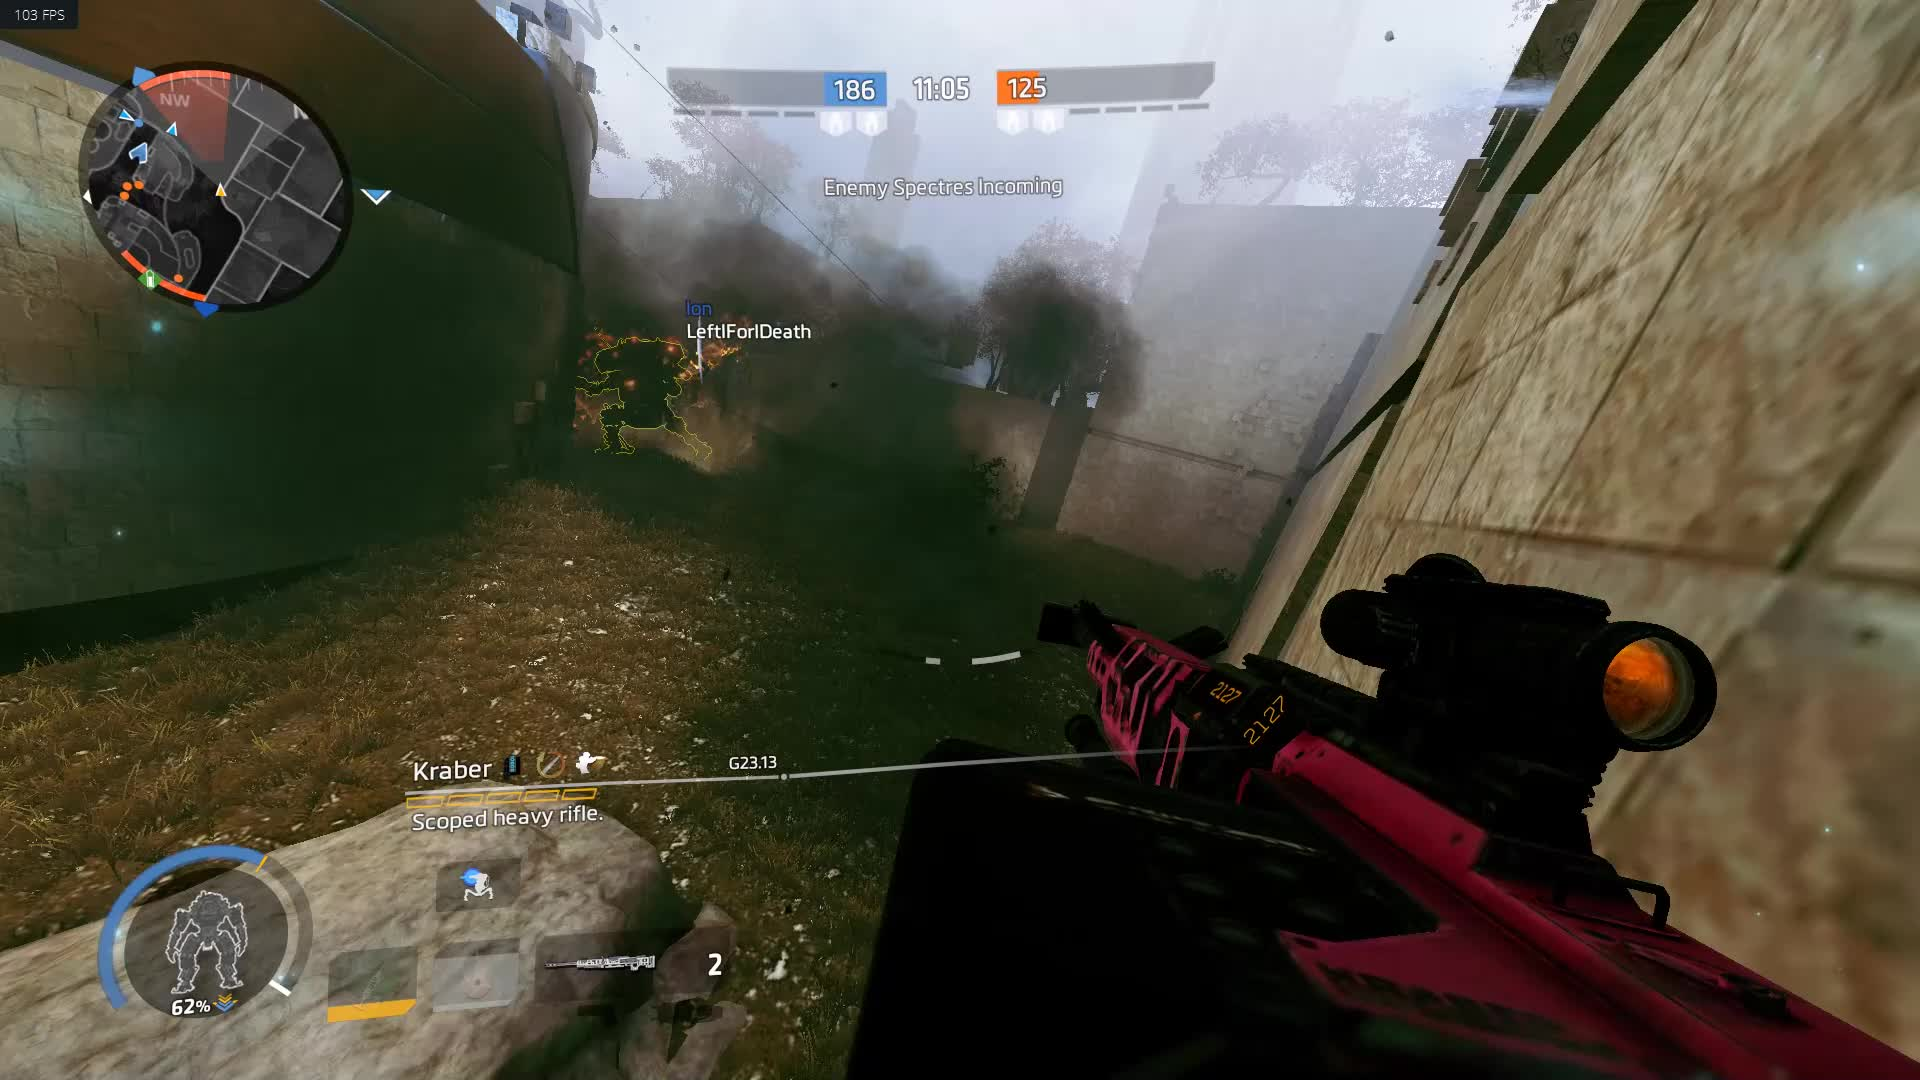 titanfall2, My Cleanest Double GIFs